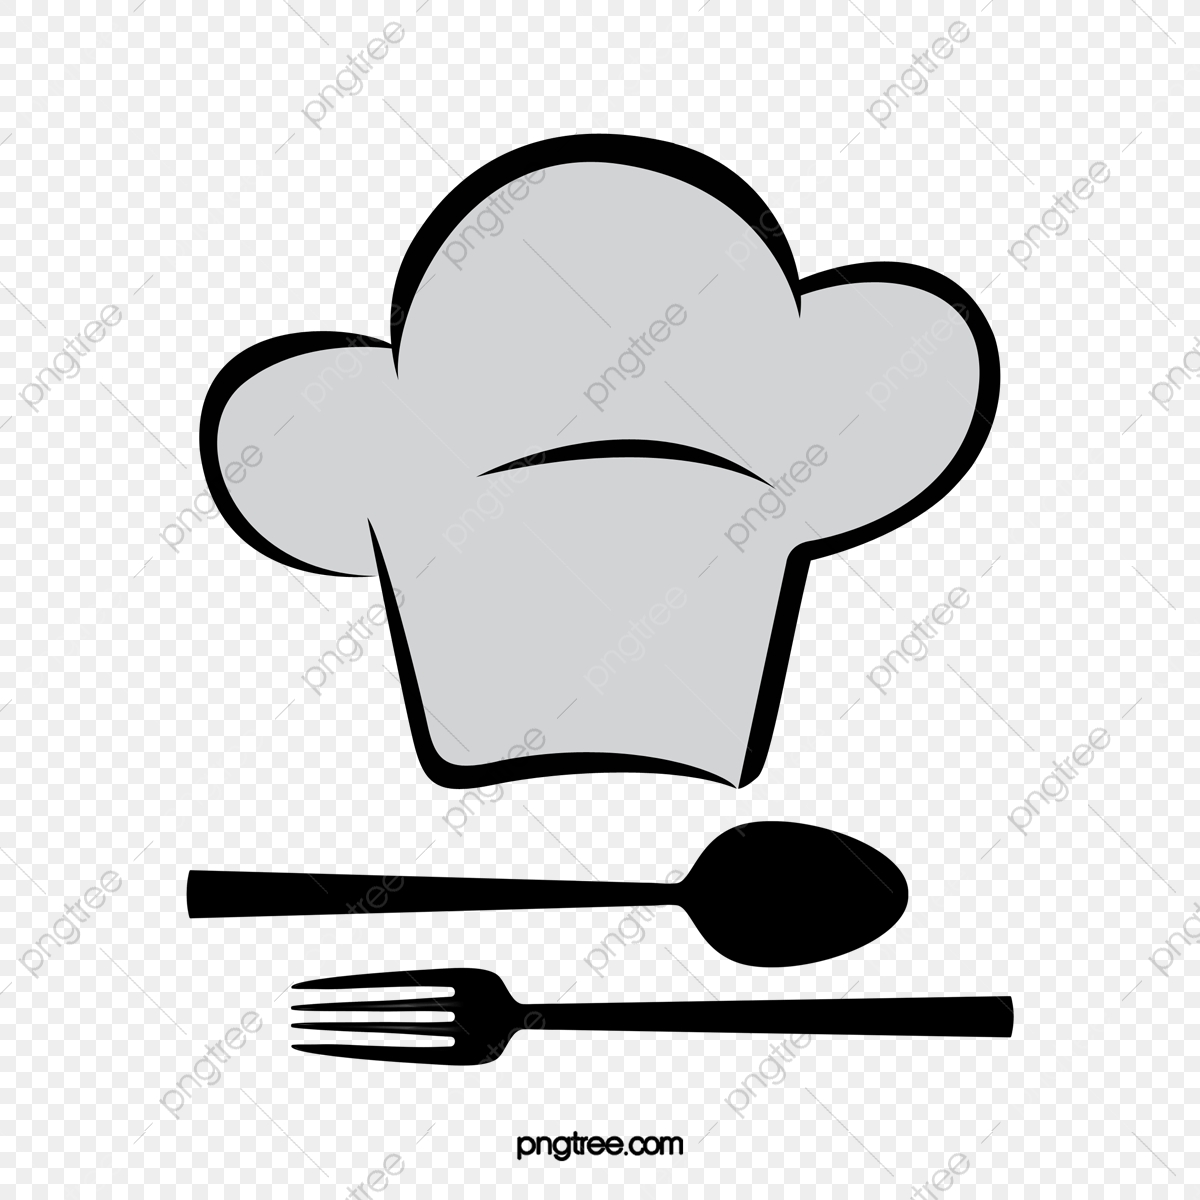 chef png vector psd and clipart with transparent background for free download pngtree https pngtree com freepng chef hat 2417015 html